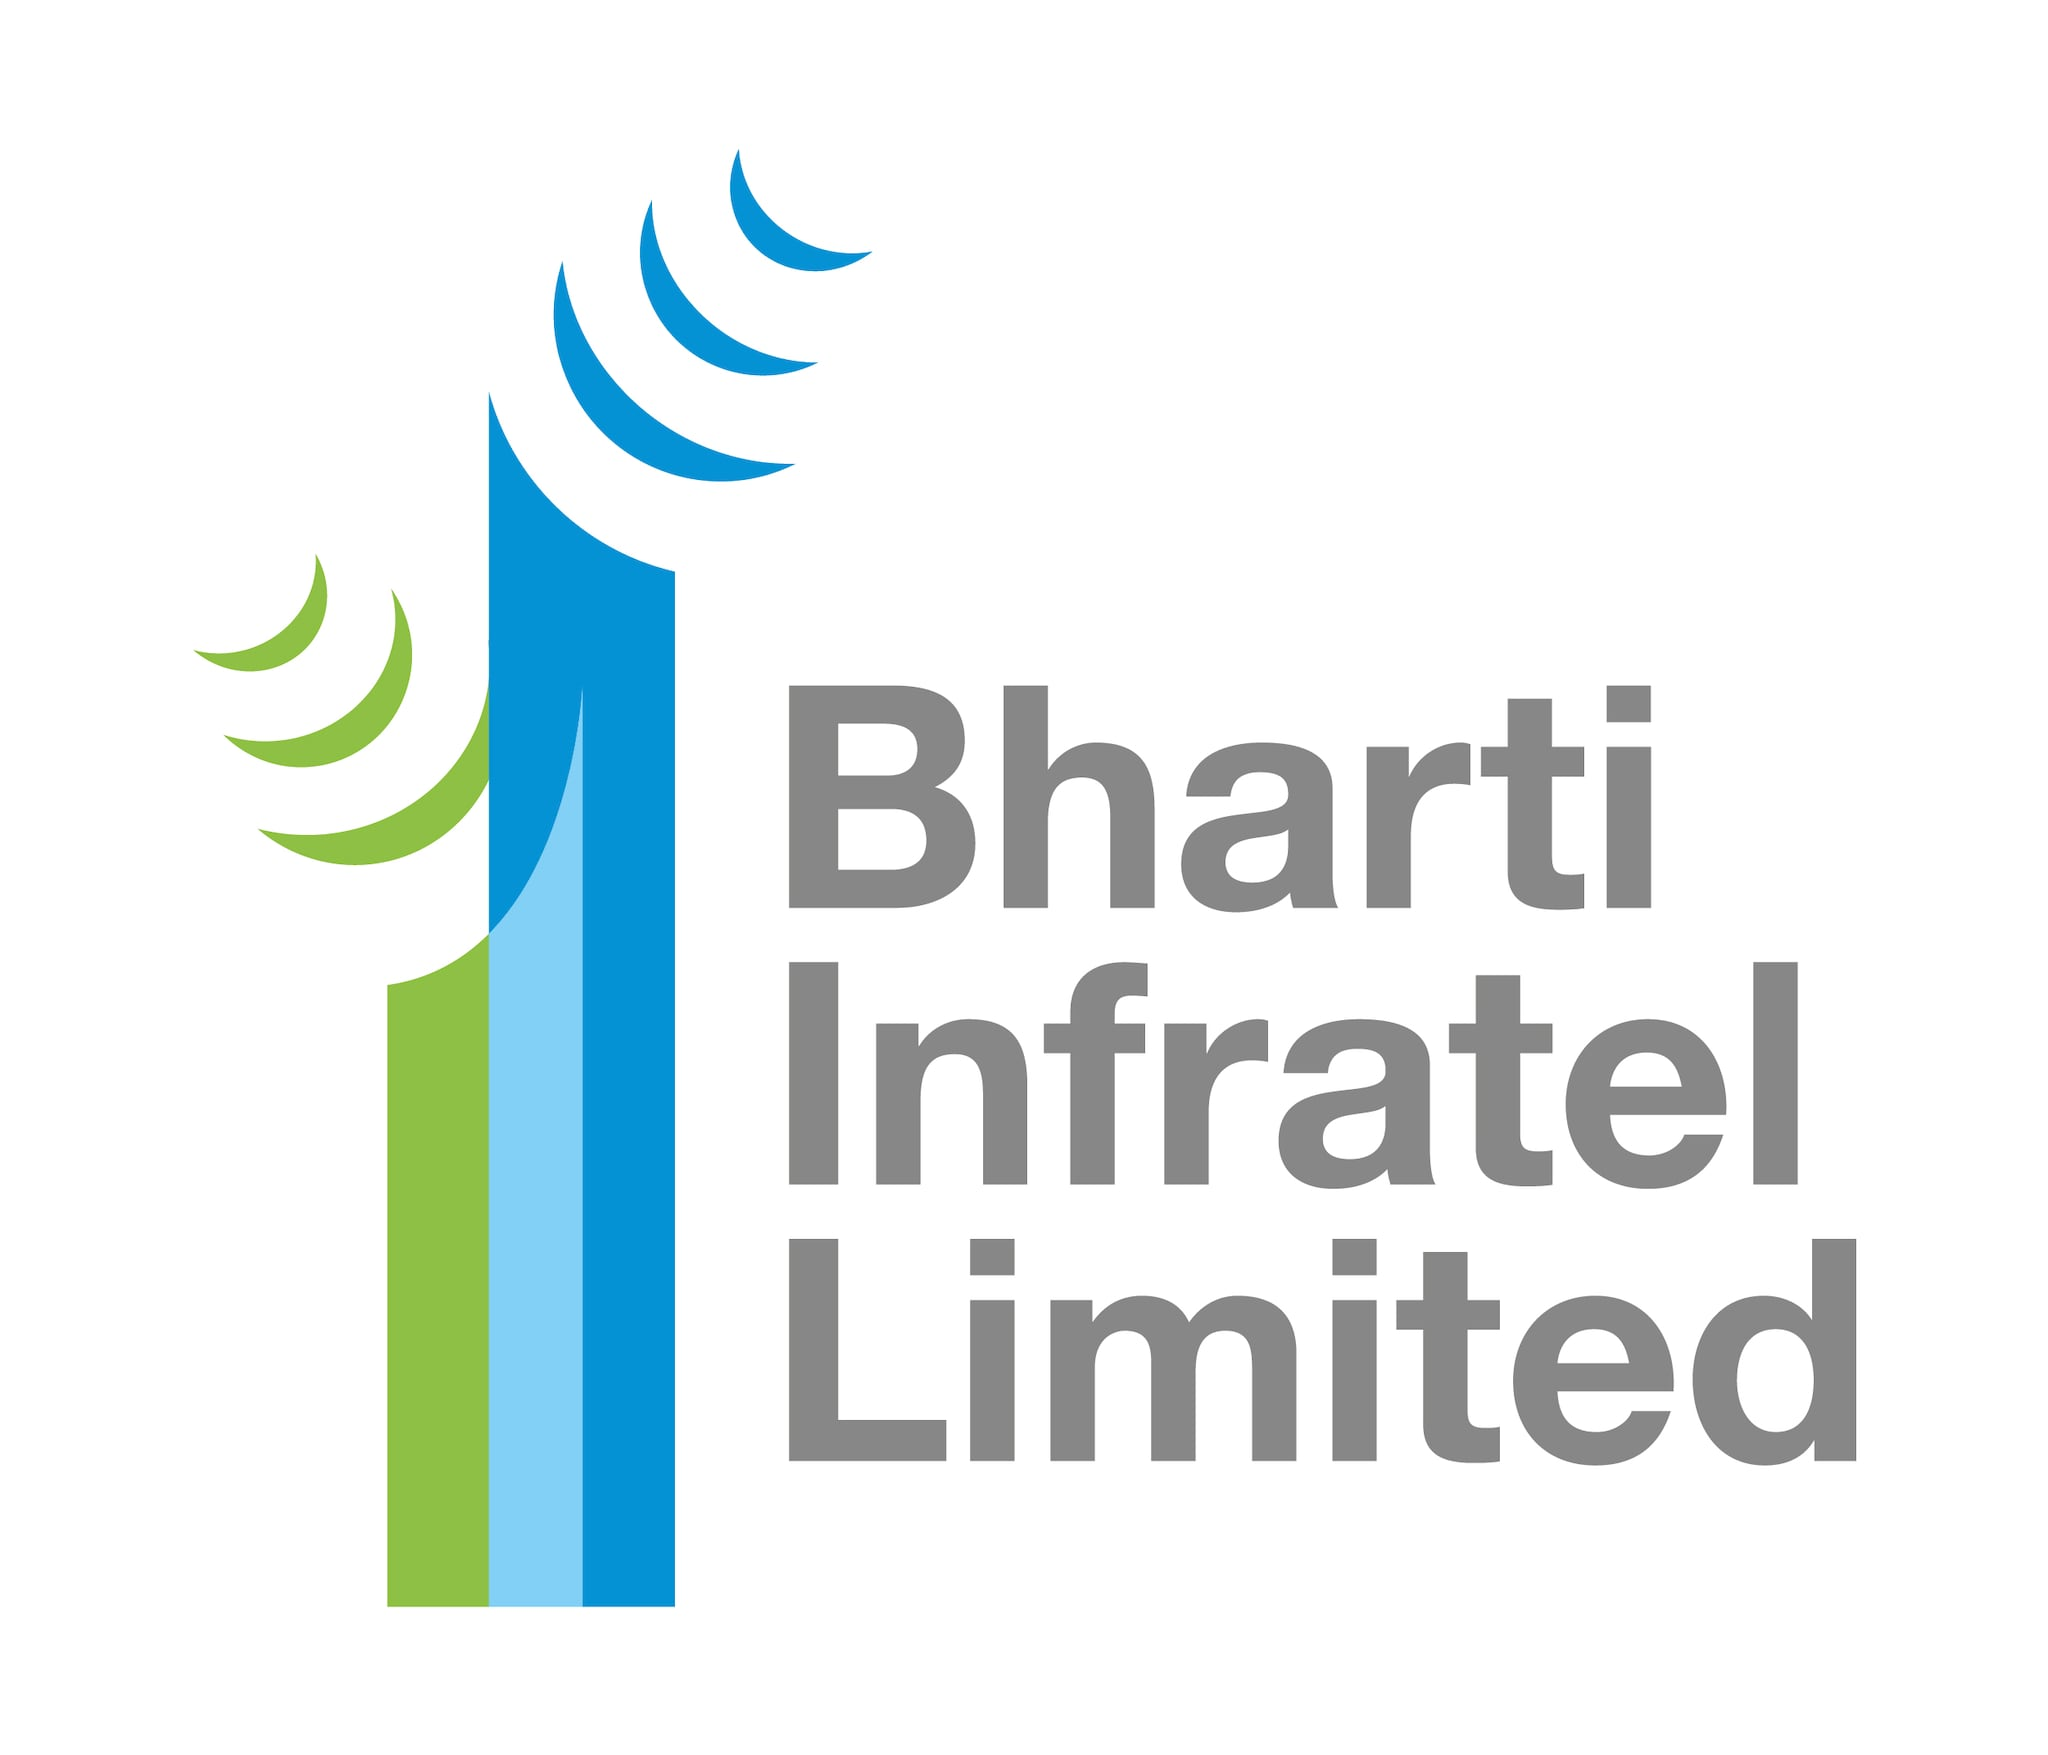 Bharti Infratel: Bharti and Vodafone Group named Bimal Dayal as the CEO of the mega tower company proposed to be formed from the merger of Indus Towers and Bharti Infratel, and said the merger process is in